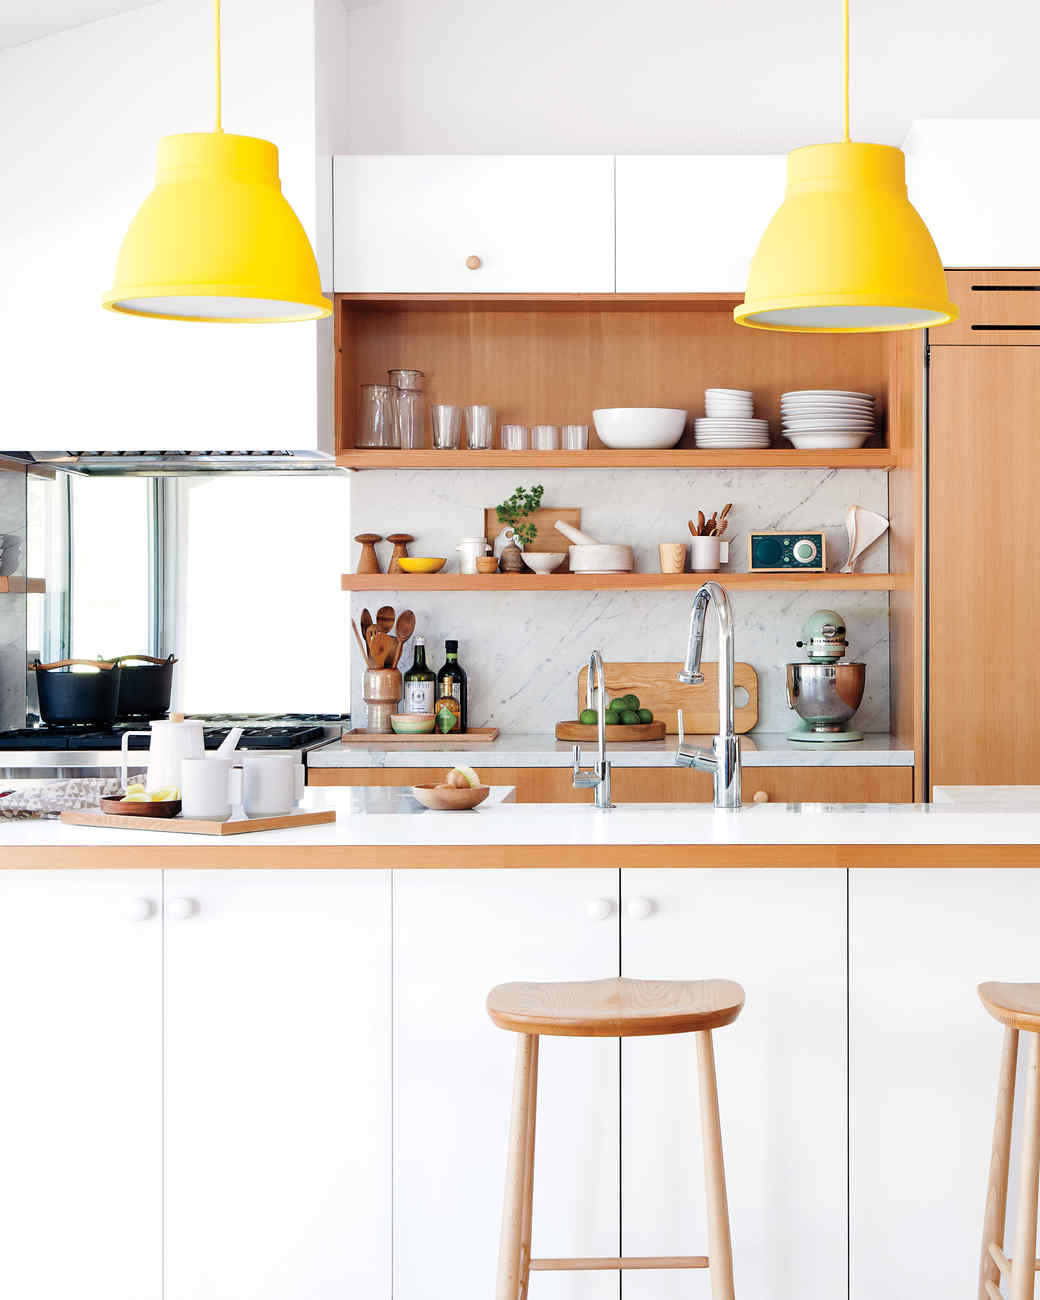 A Colorful Kitchen Remodel That's Truly the Hub of the Home